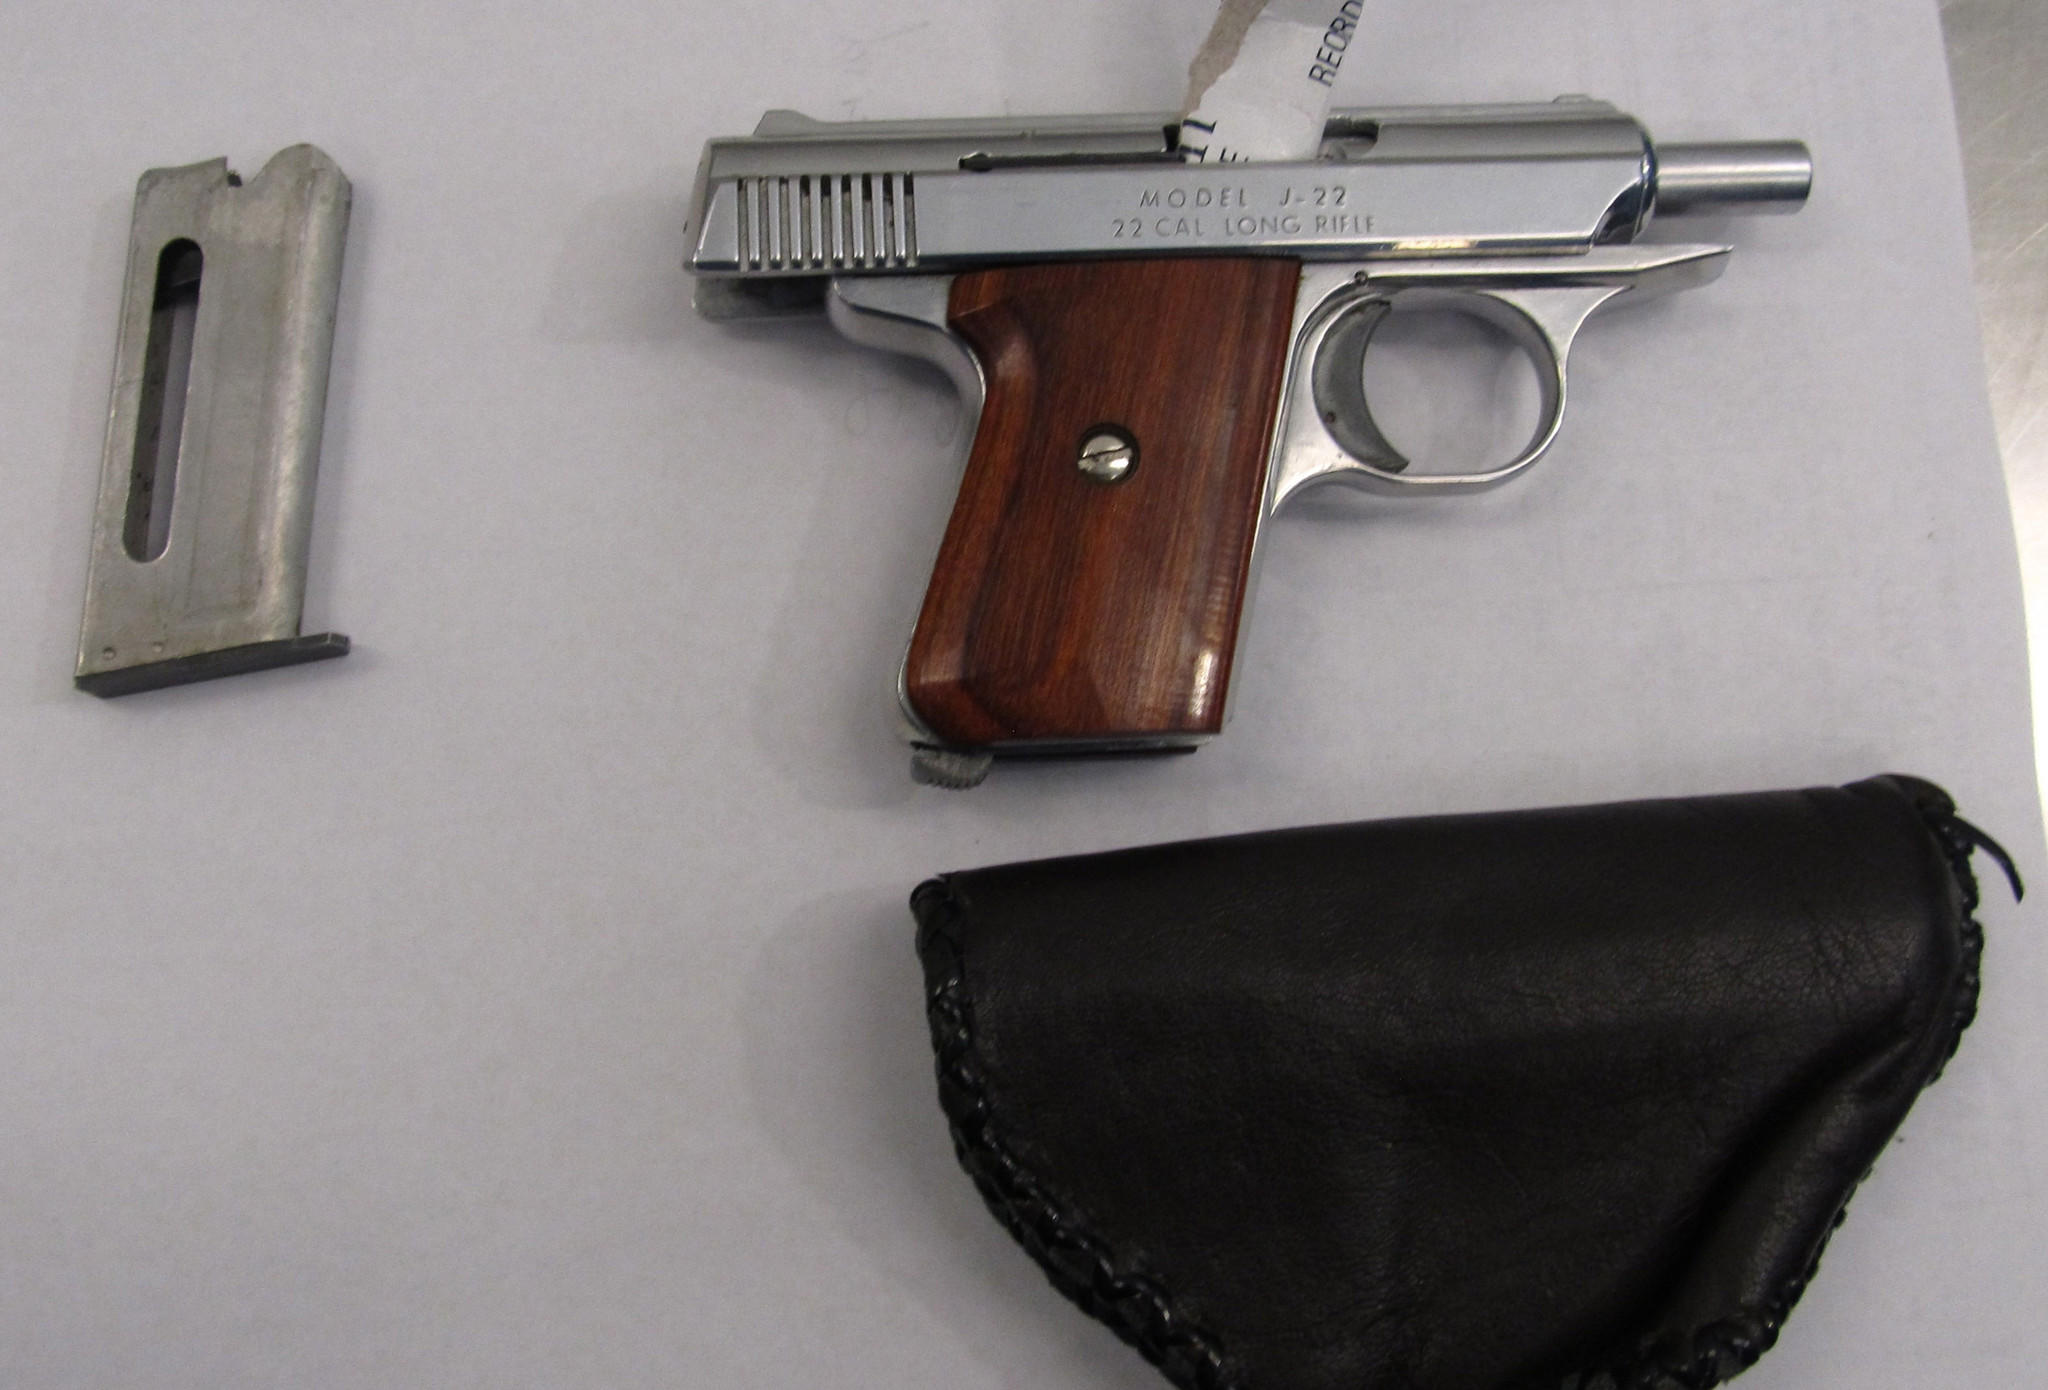 Officials say a 76-year-old man was arrested with this .22-caliber handgun in his carry-on luggage at Midway Airport this morning.